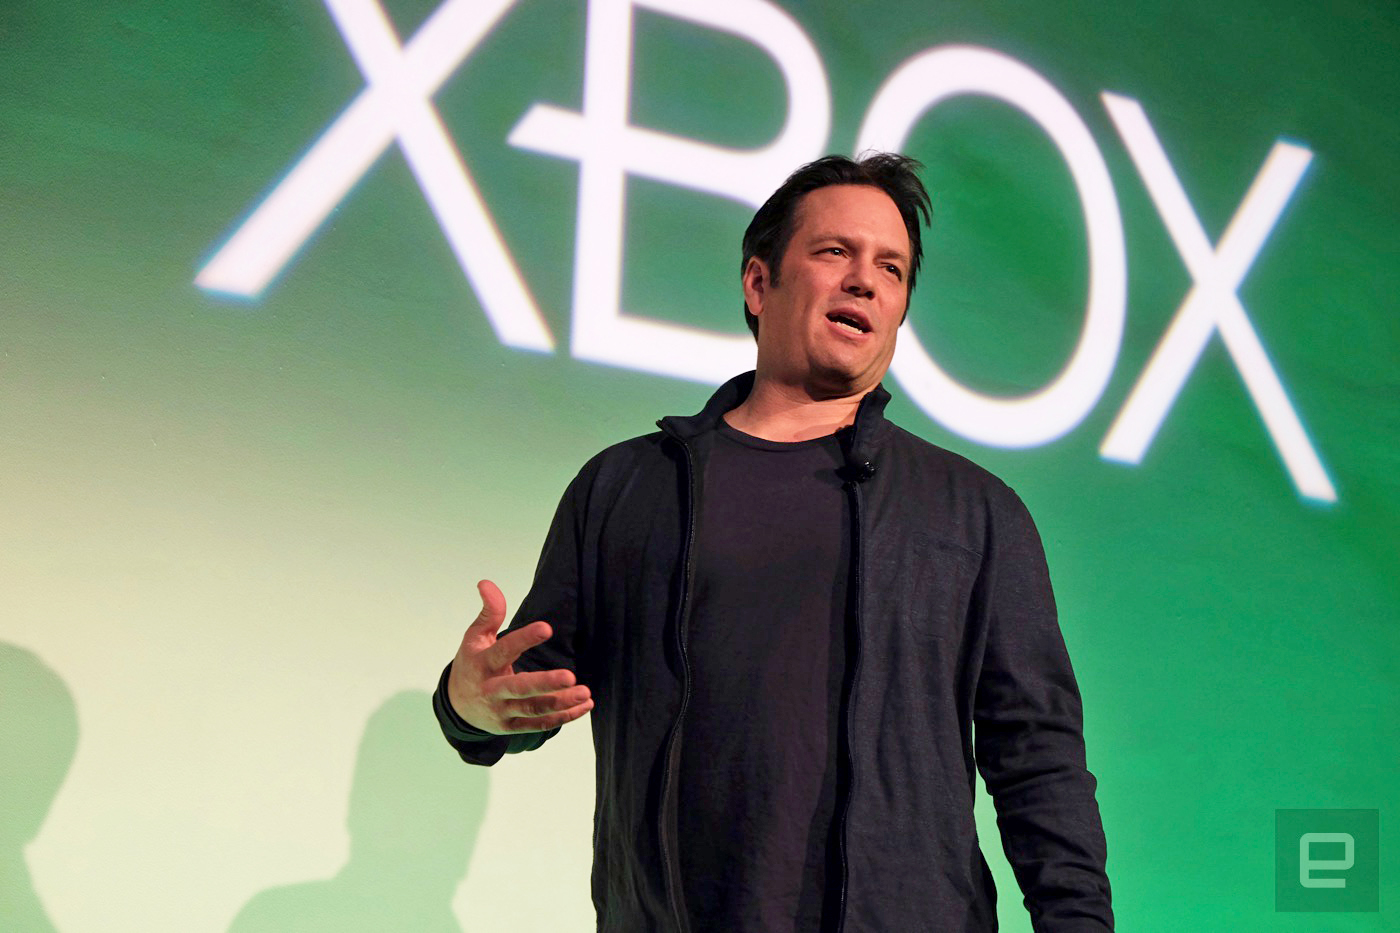 Rumors are flying about new Xbox consoles and streaming devices